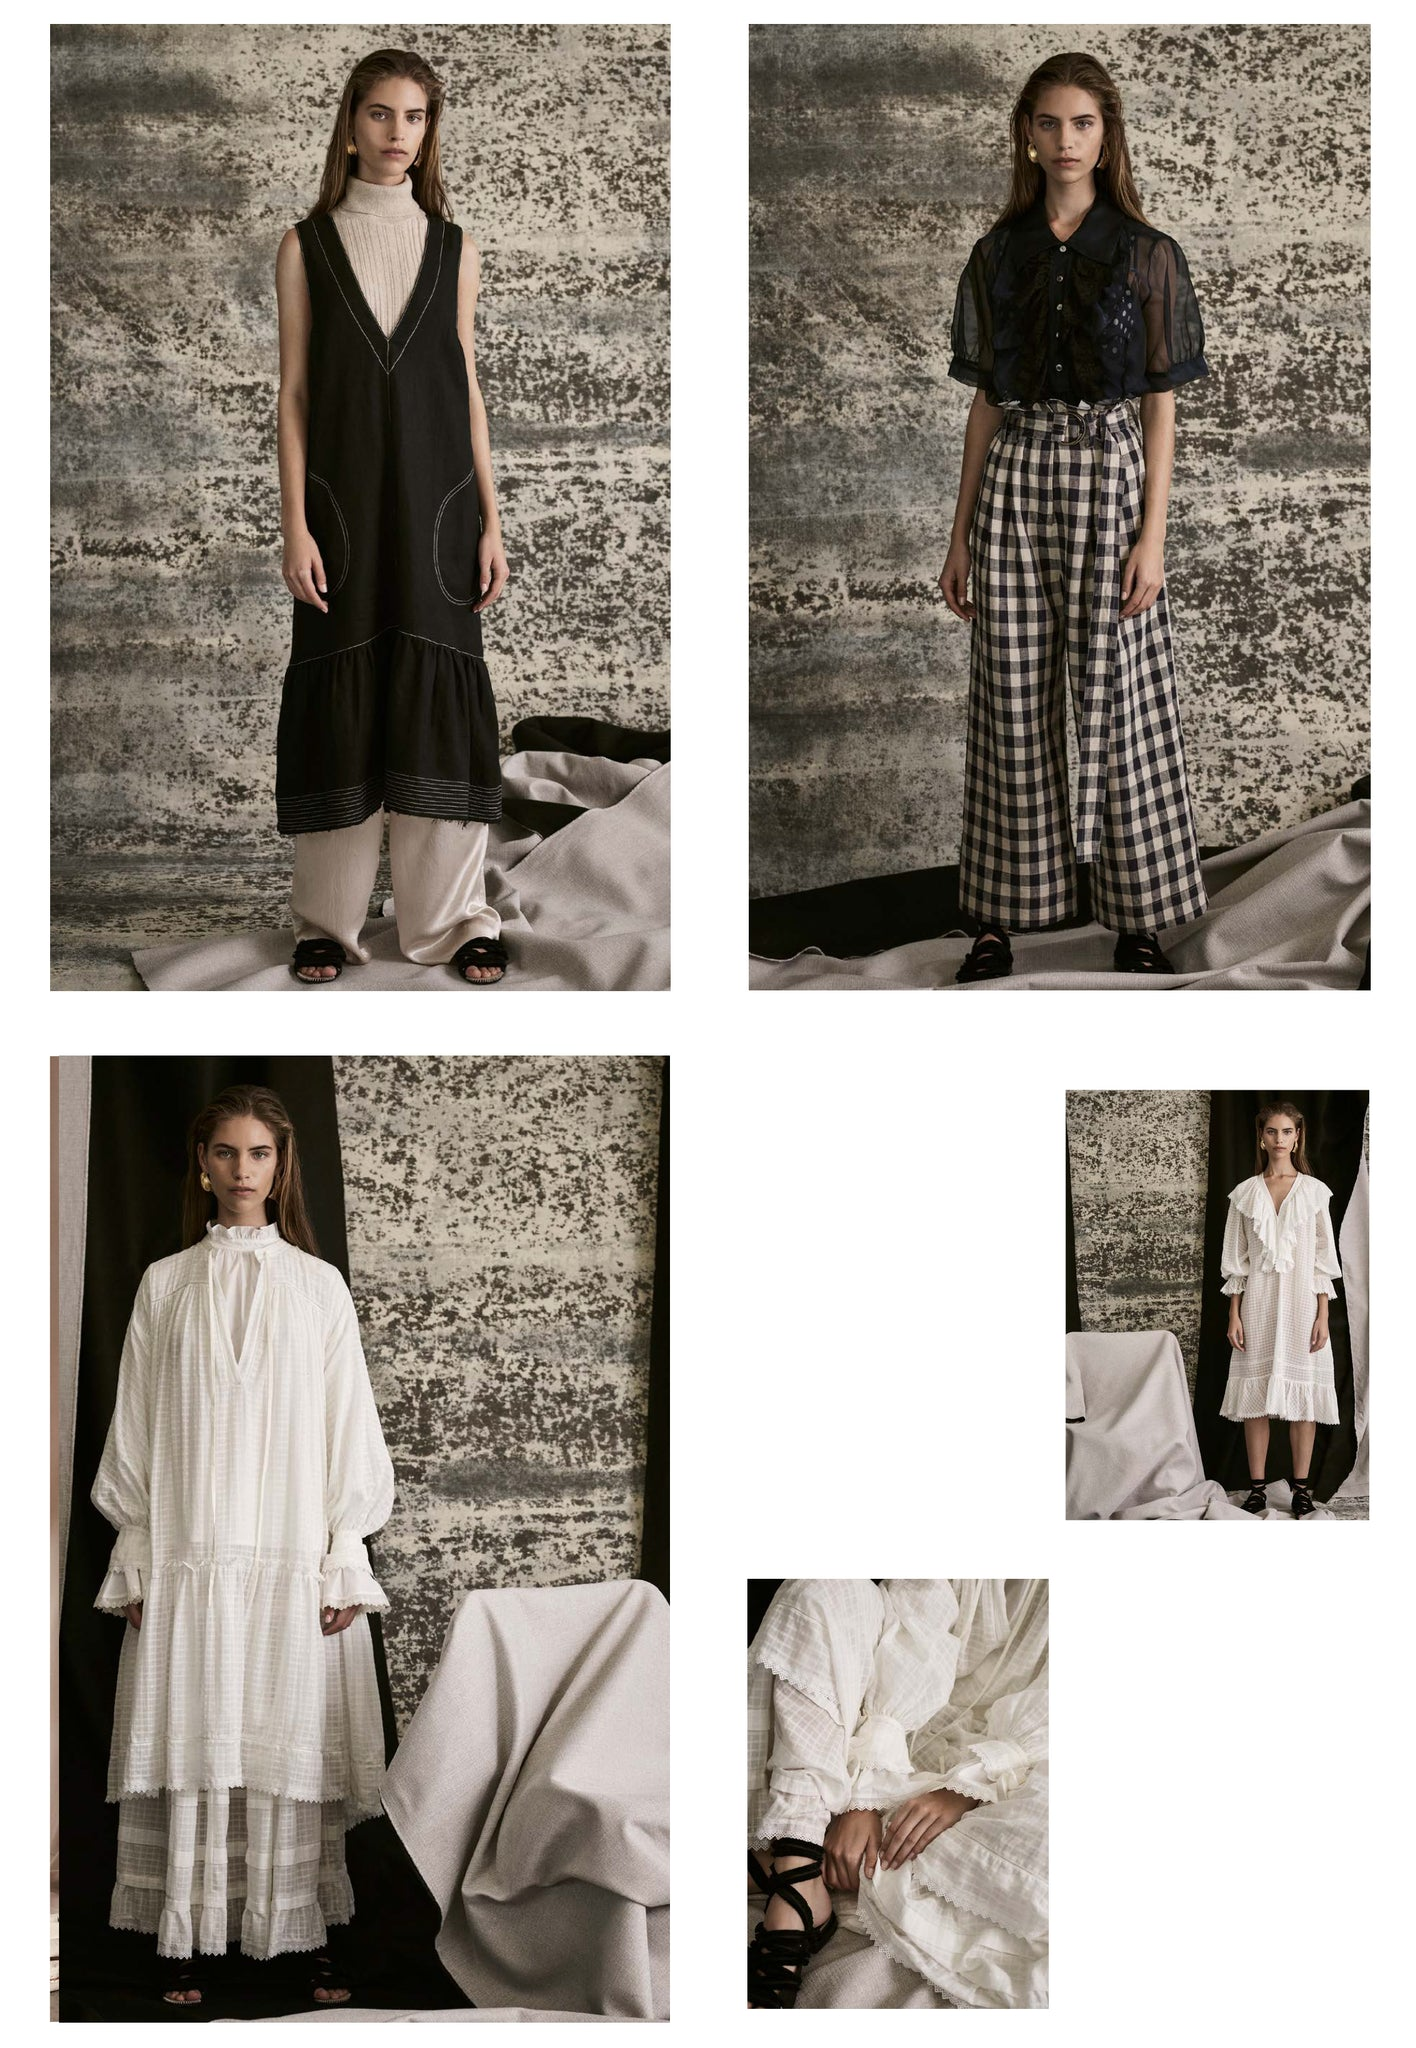 LM | Pre-Fall 18 Lookbook